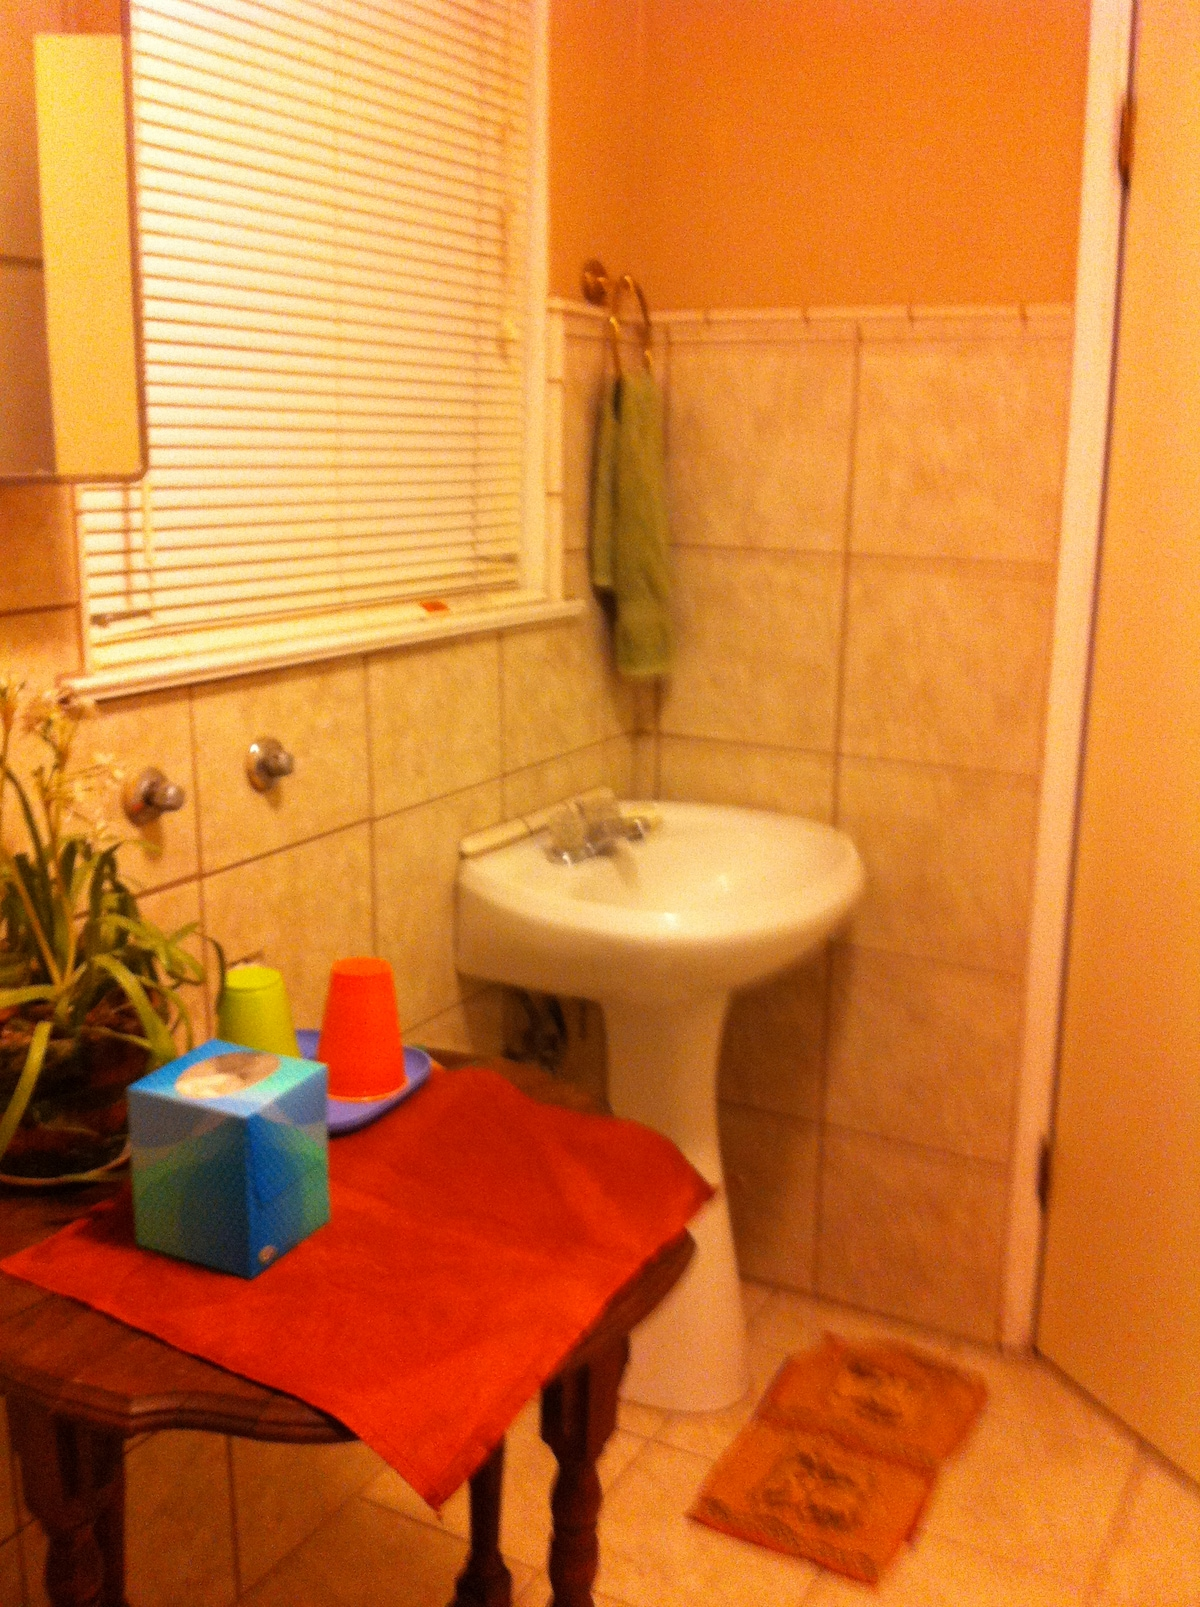 Clean bathroom, with a sink, a toilet, and a shower en-suite.